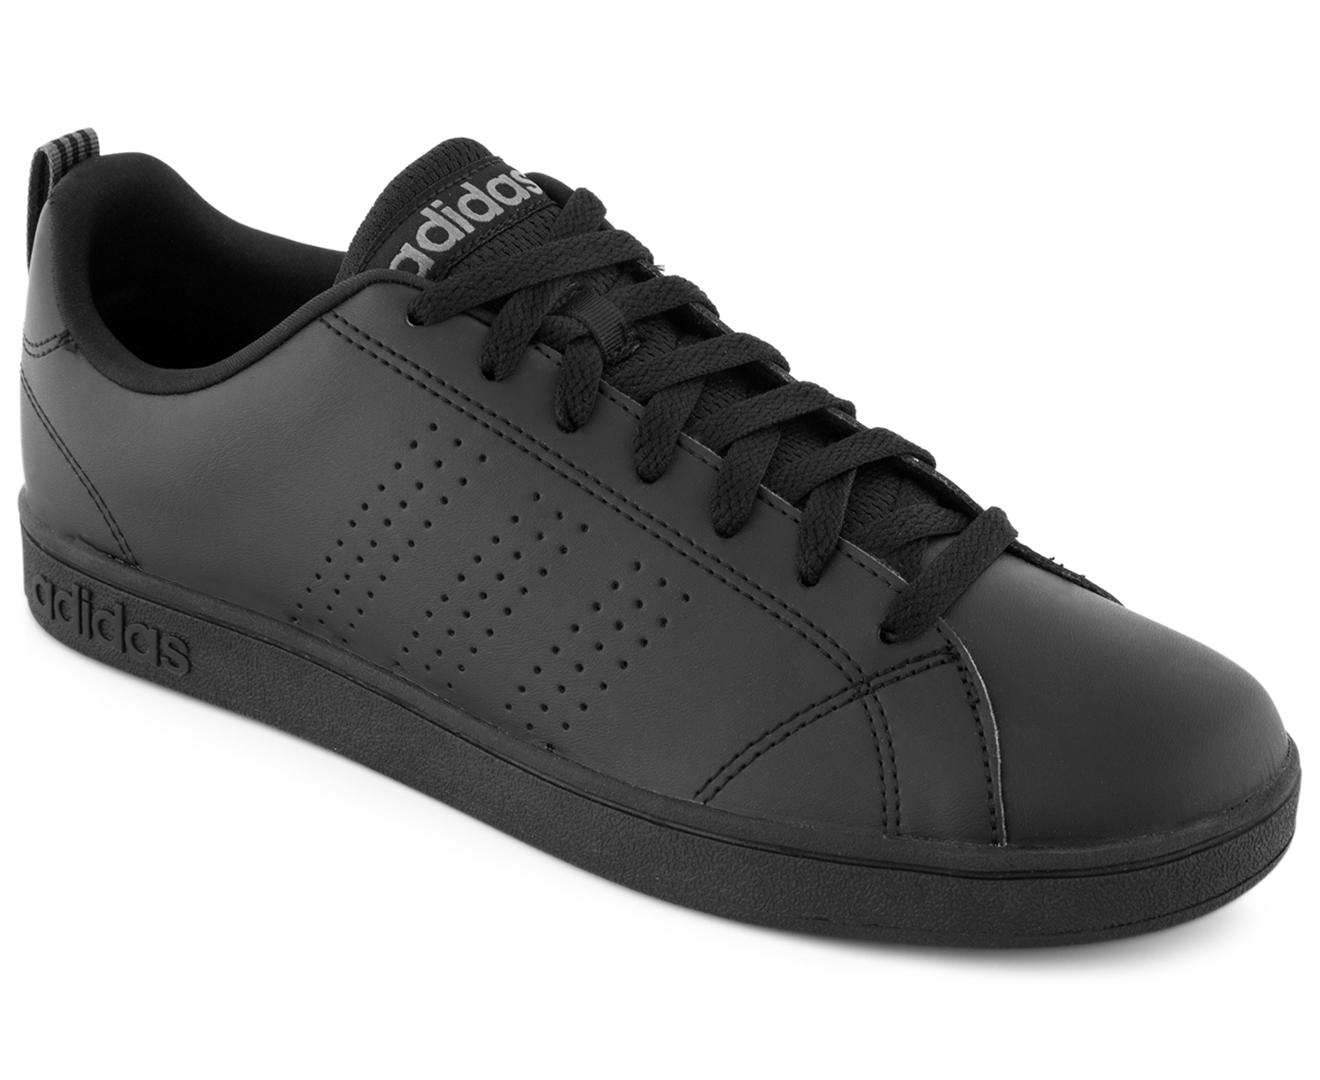 ba7dd4a738 Adidas Men s Advantage Clean VS Shoe - Core Black Lead